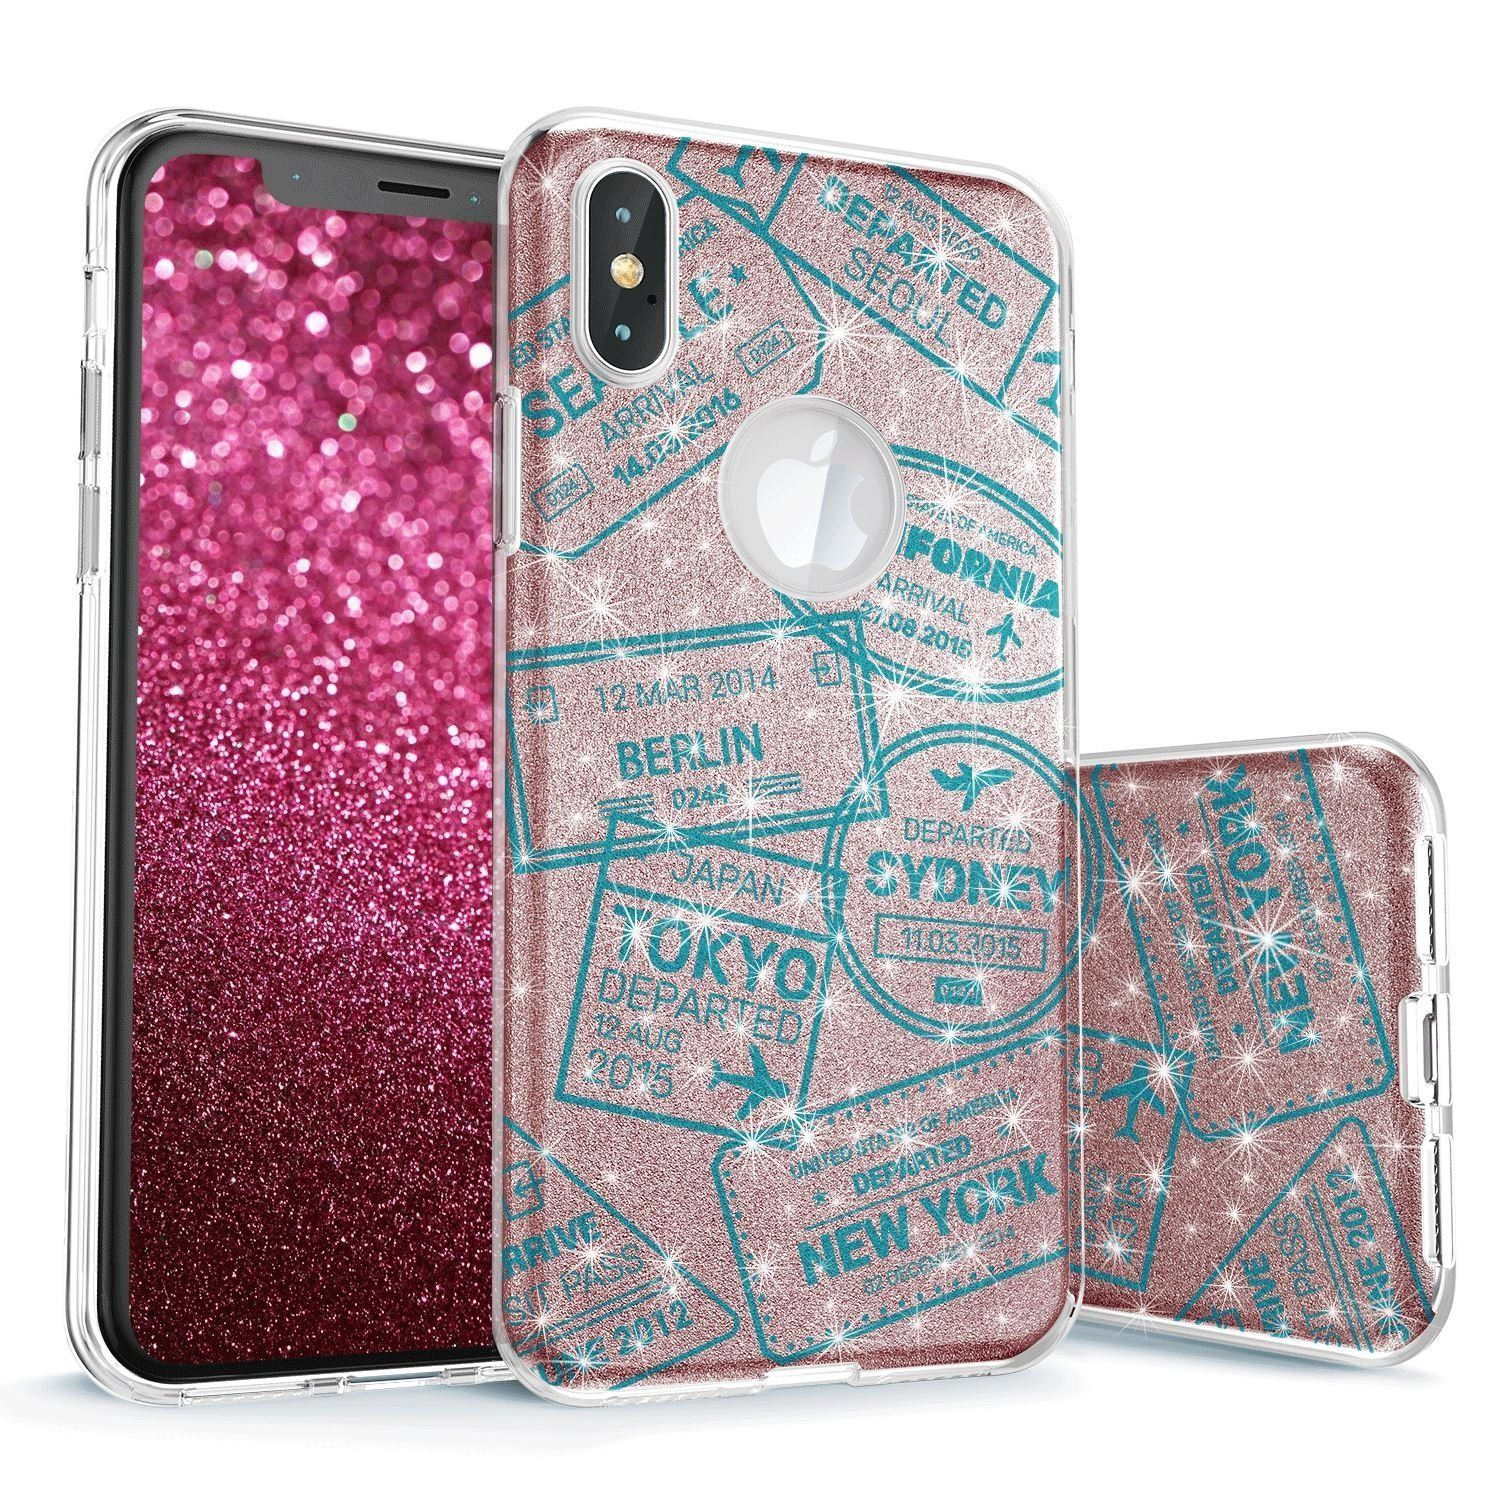 Passport Visa Stamps Teal on Rose Gold Glitter Case for